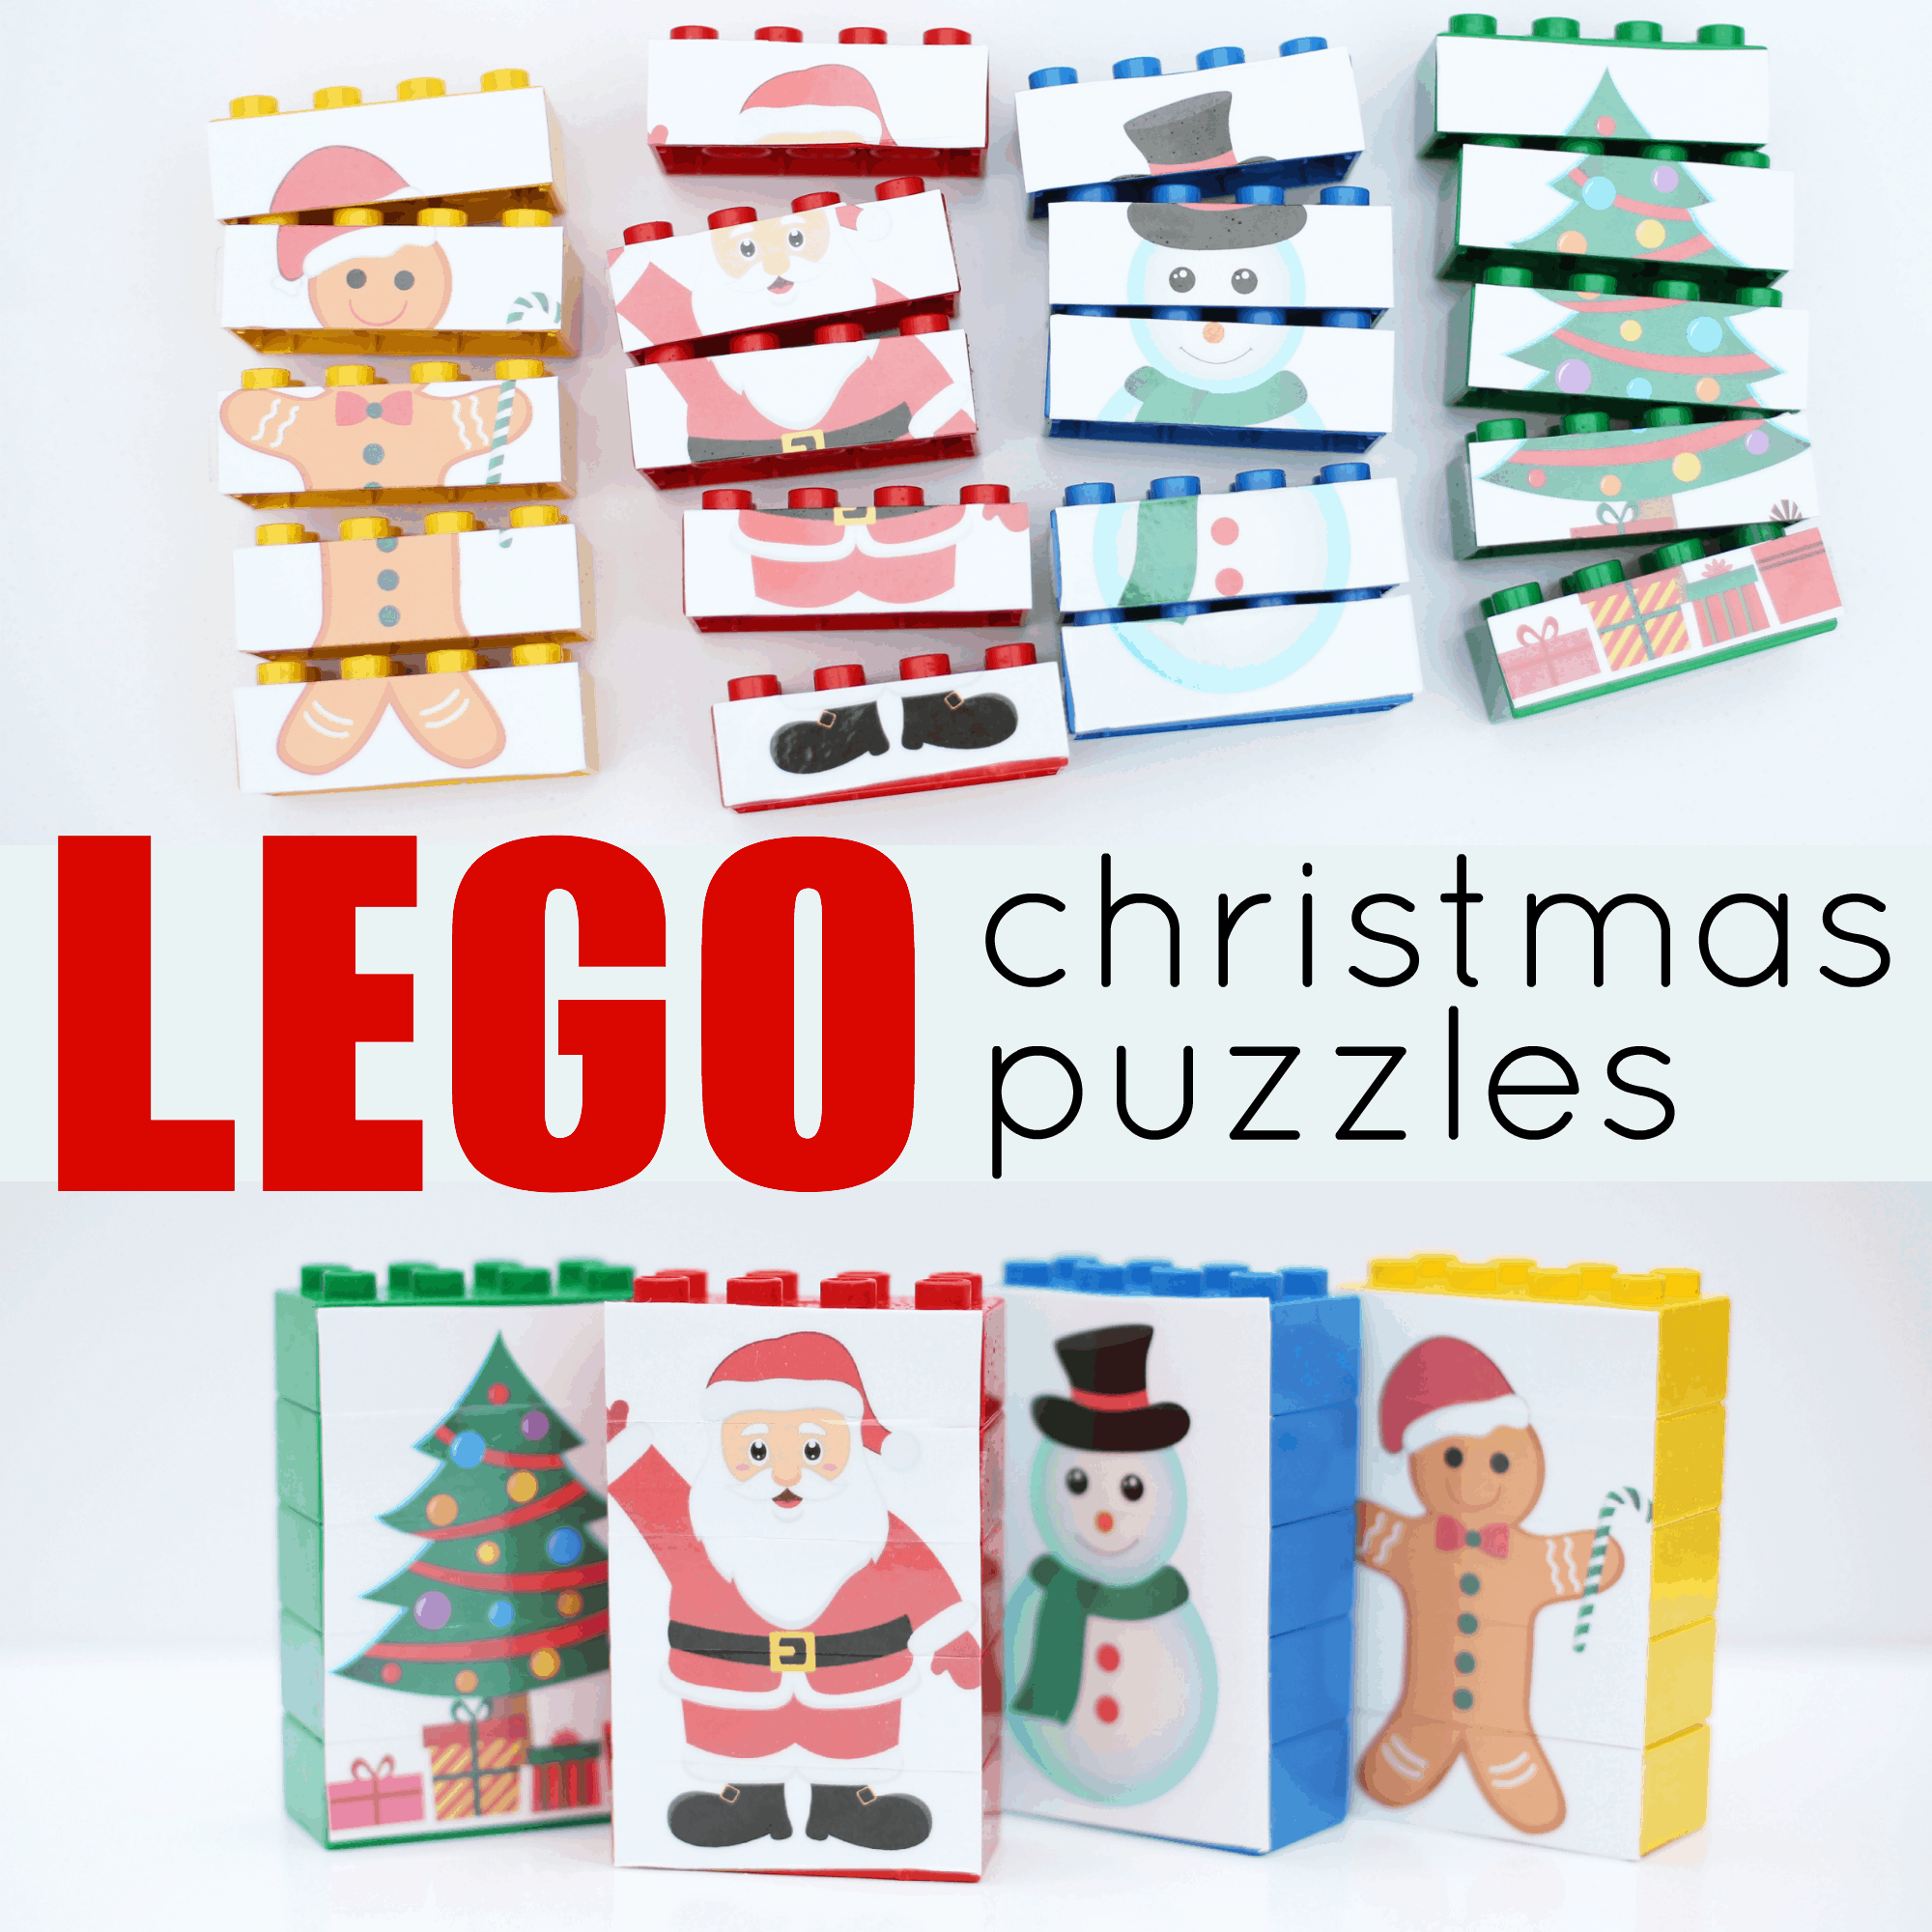 image regarding Christmas Puzzles Printable titled LEGO Xmas Puzzles - I Can Prepare My Little one!